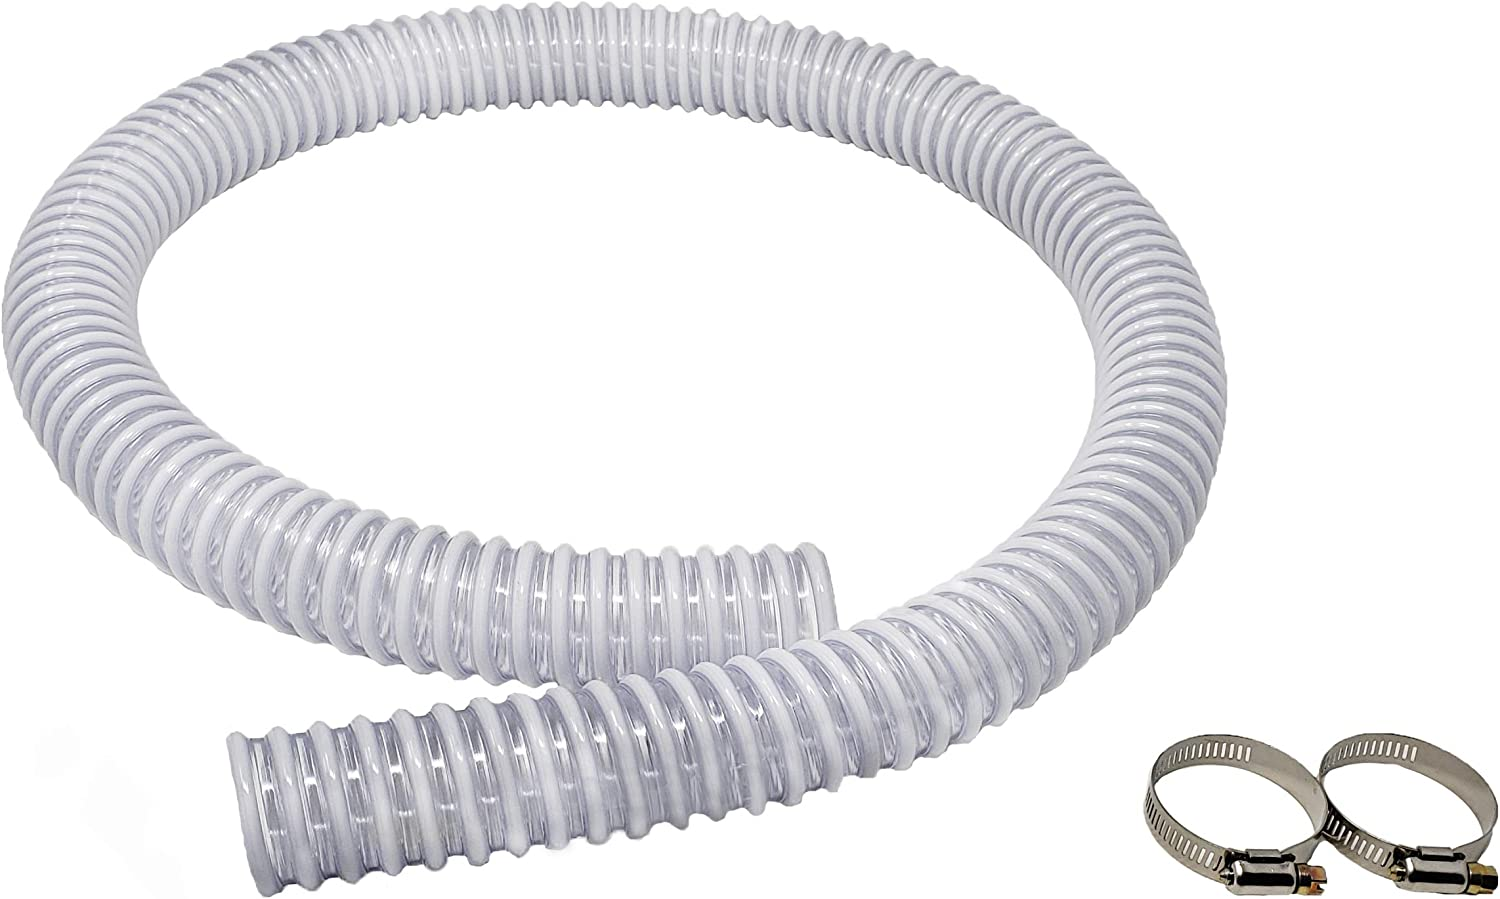 Sealproof 1.25 x 59 Inch Pool Filter Pump Connection Hose for 1-1/4 (32mm) Intex Systems and Above Ground Pools, Premium Quality Kinkproof PVC, Made in USA | Includes 2 Hose Clamps